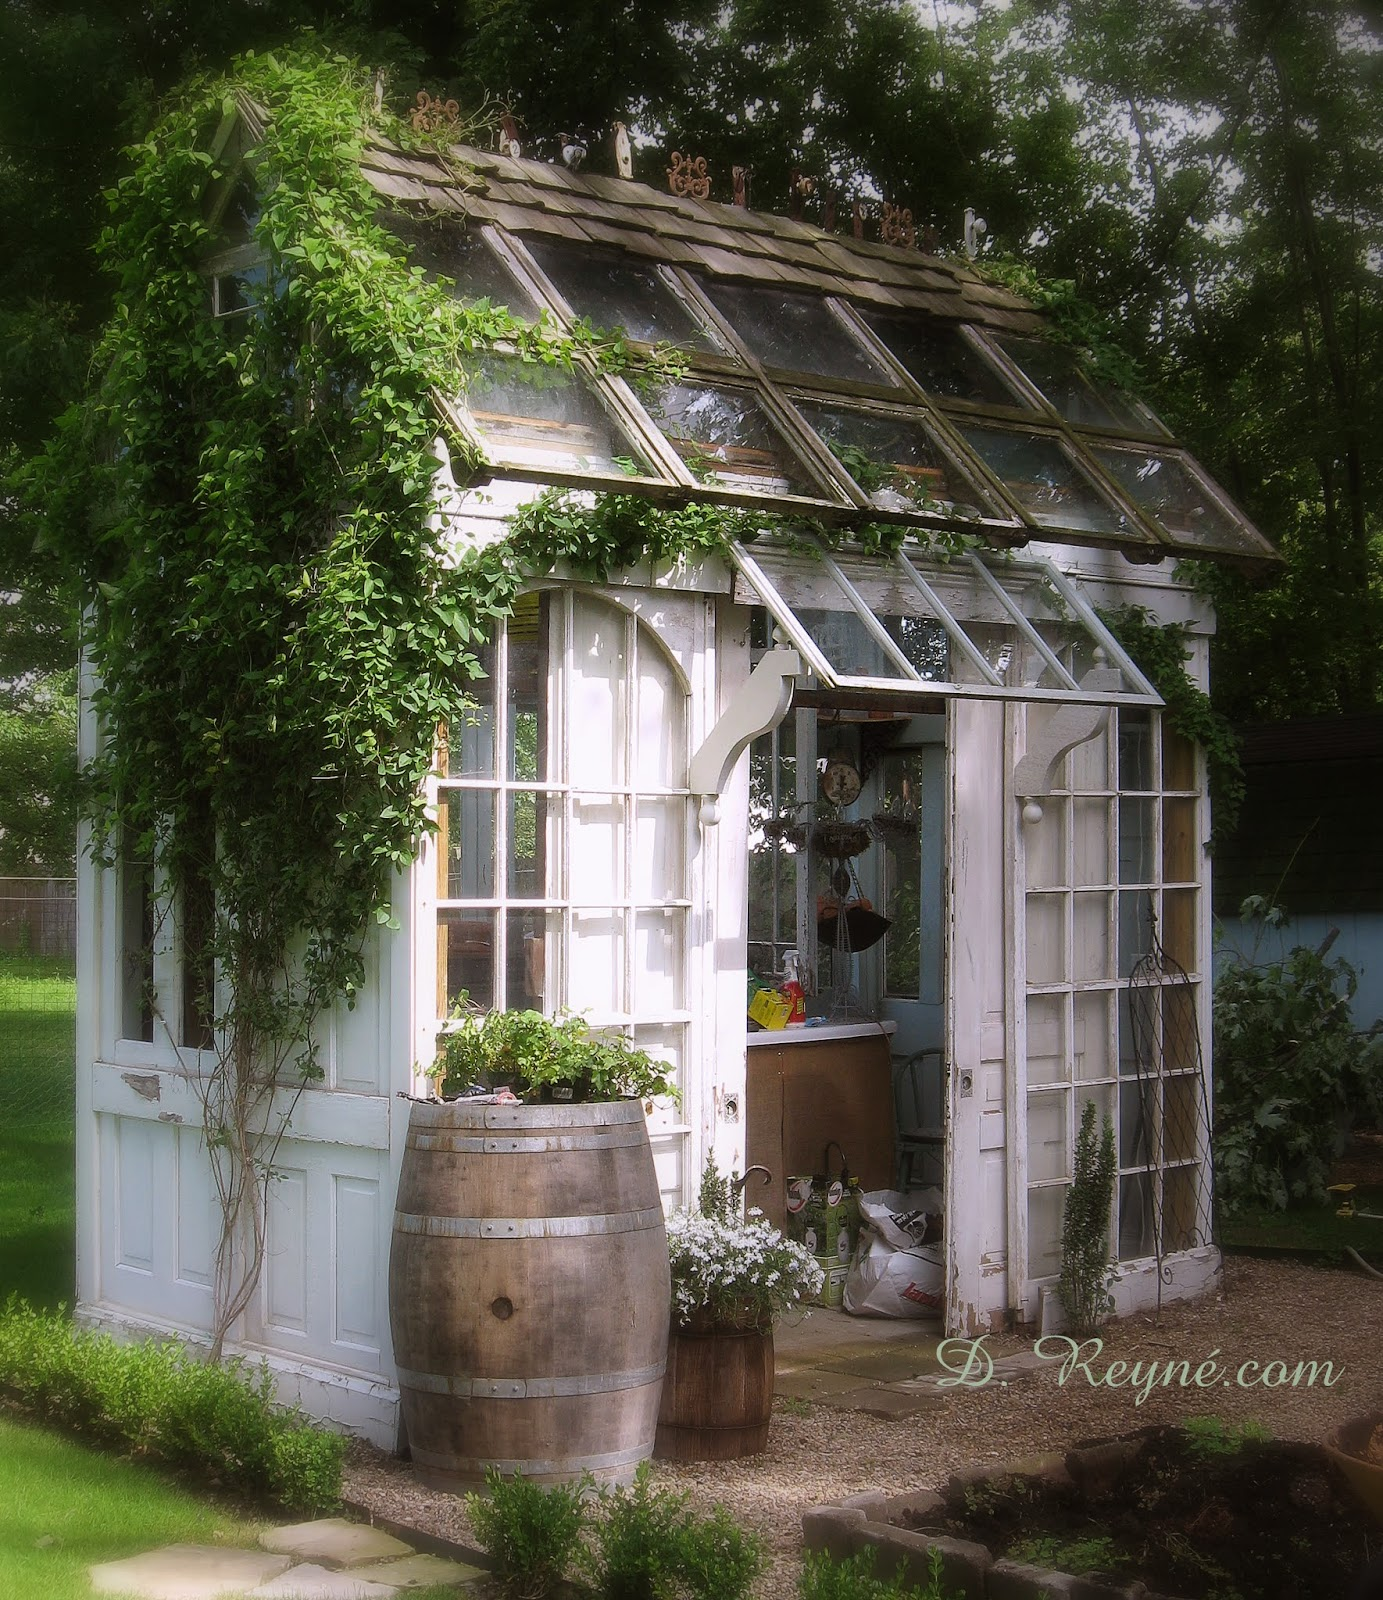 Old garden house - Tinkerhouse Trading Company Garden Inspired Living